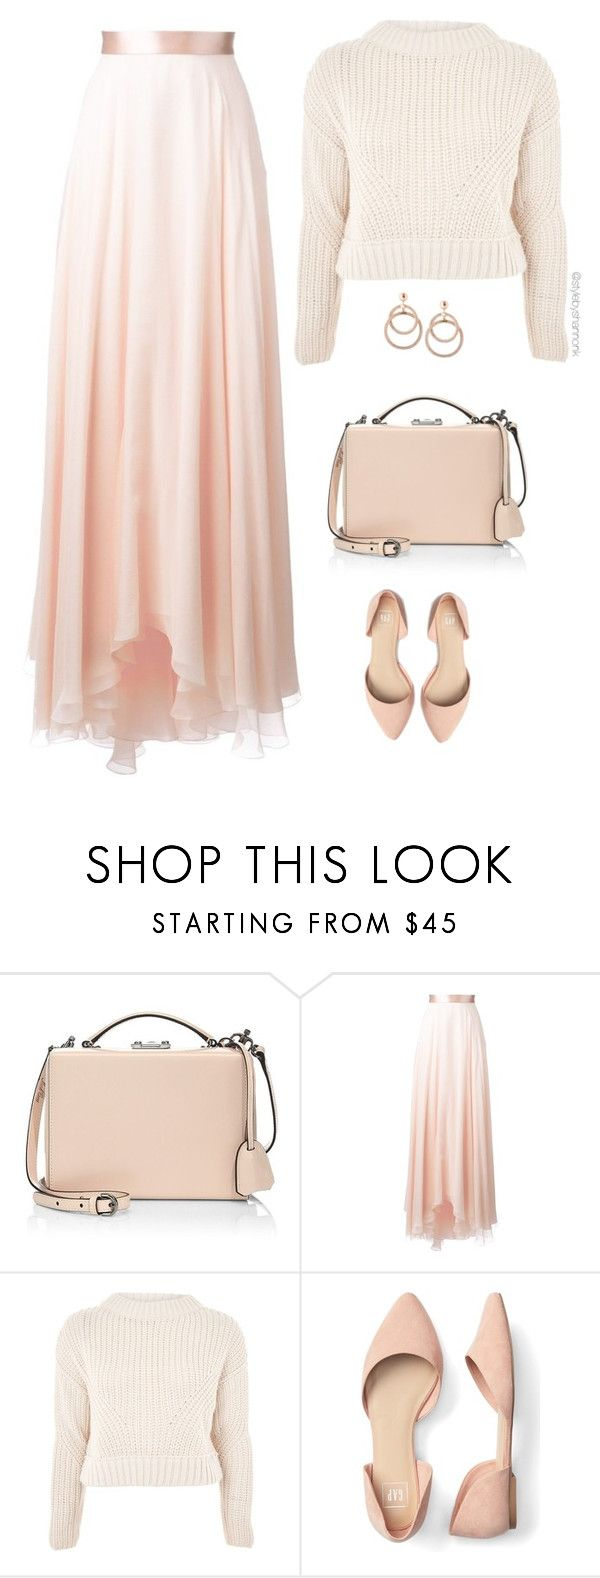 """Fall Blushes: Long Skirt"" by stylebyshannonk on Polyvore   #polyvore #longskirt #blushtones #fallfashion #fallstyle #croppedjumper #topshop #jumper #sweater #maxiskirt #flats #boxshoulderbag #boxpurse #shoulderbag #hoopearrings #dropearrings"